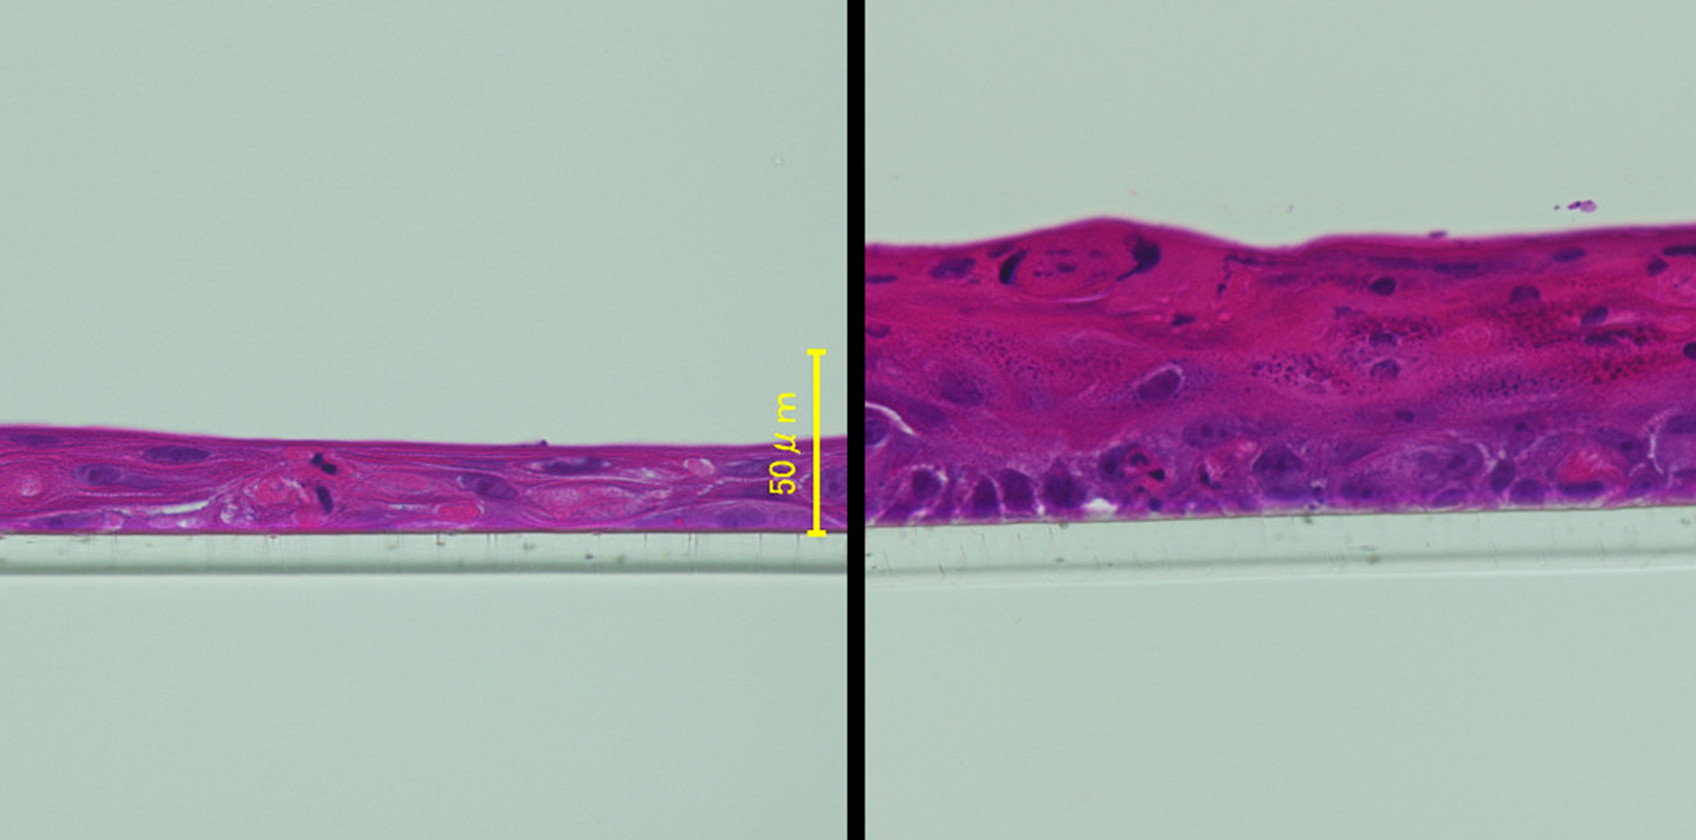 Fujifilm Creates Genome-Edited Epidermis Model, Replicates Changes Caused by Age